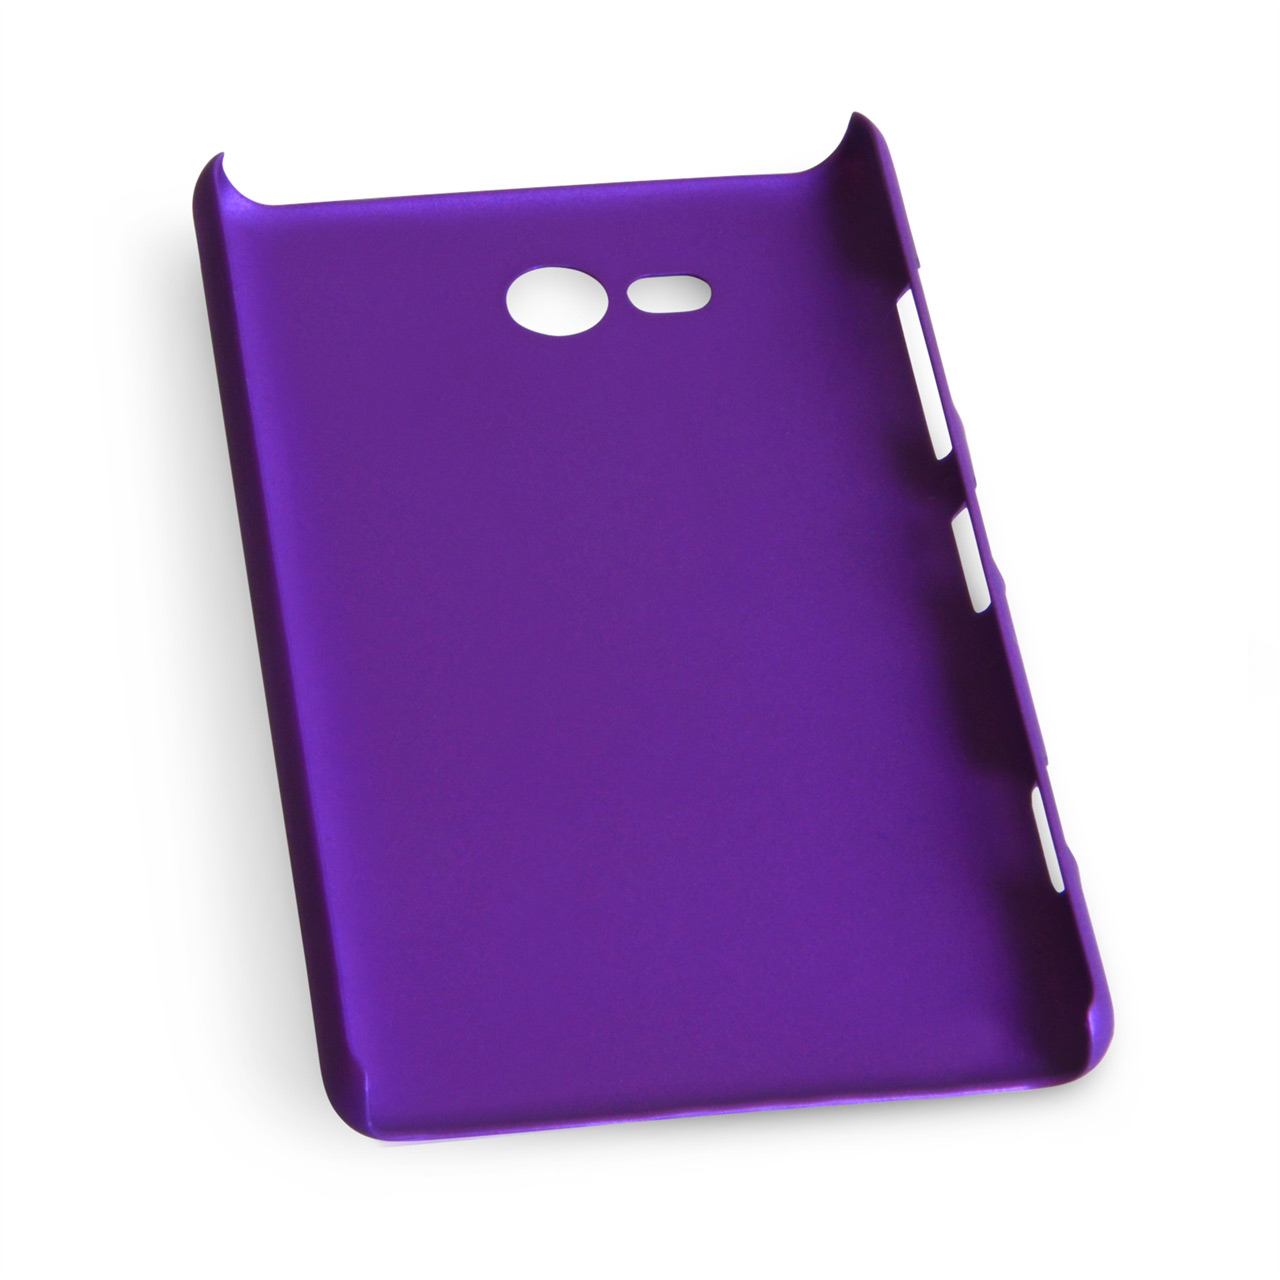 YouSave Accessories Nokia Lumia 820 Hybrid Hard Case - Purple